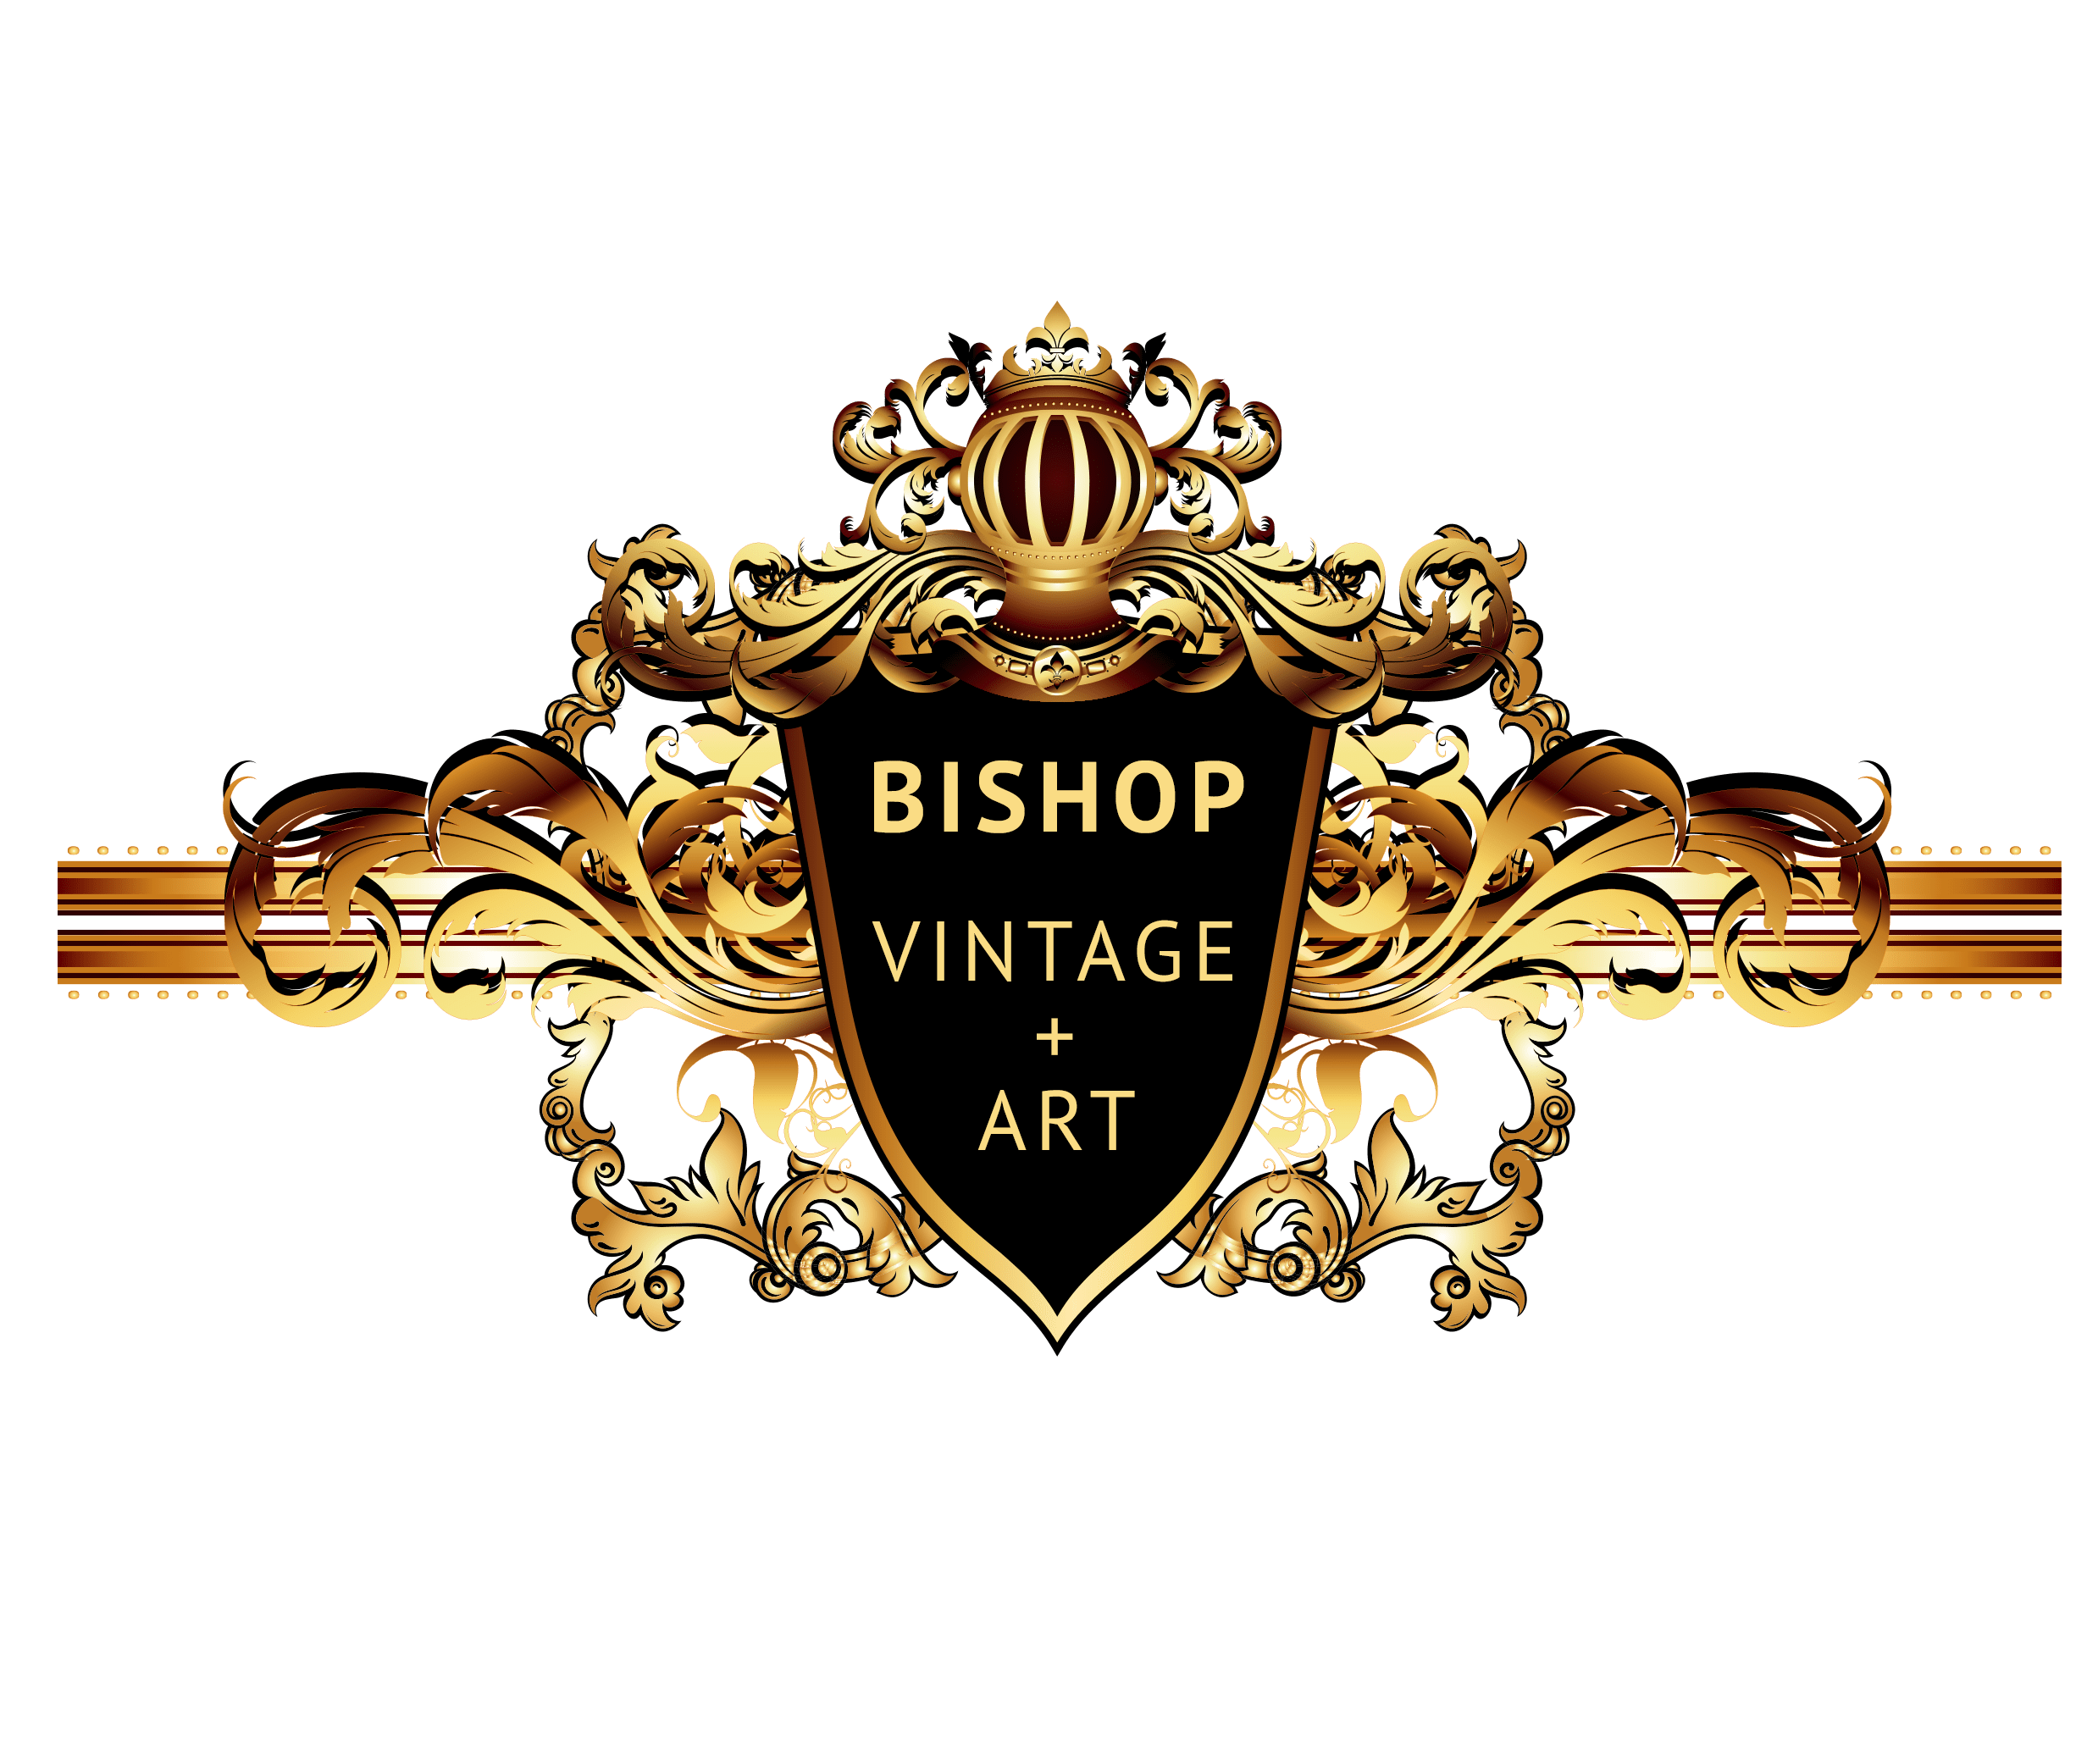 Logo_Bi-Shop+text - Vintage Onlineshop